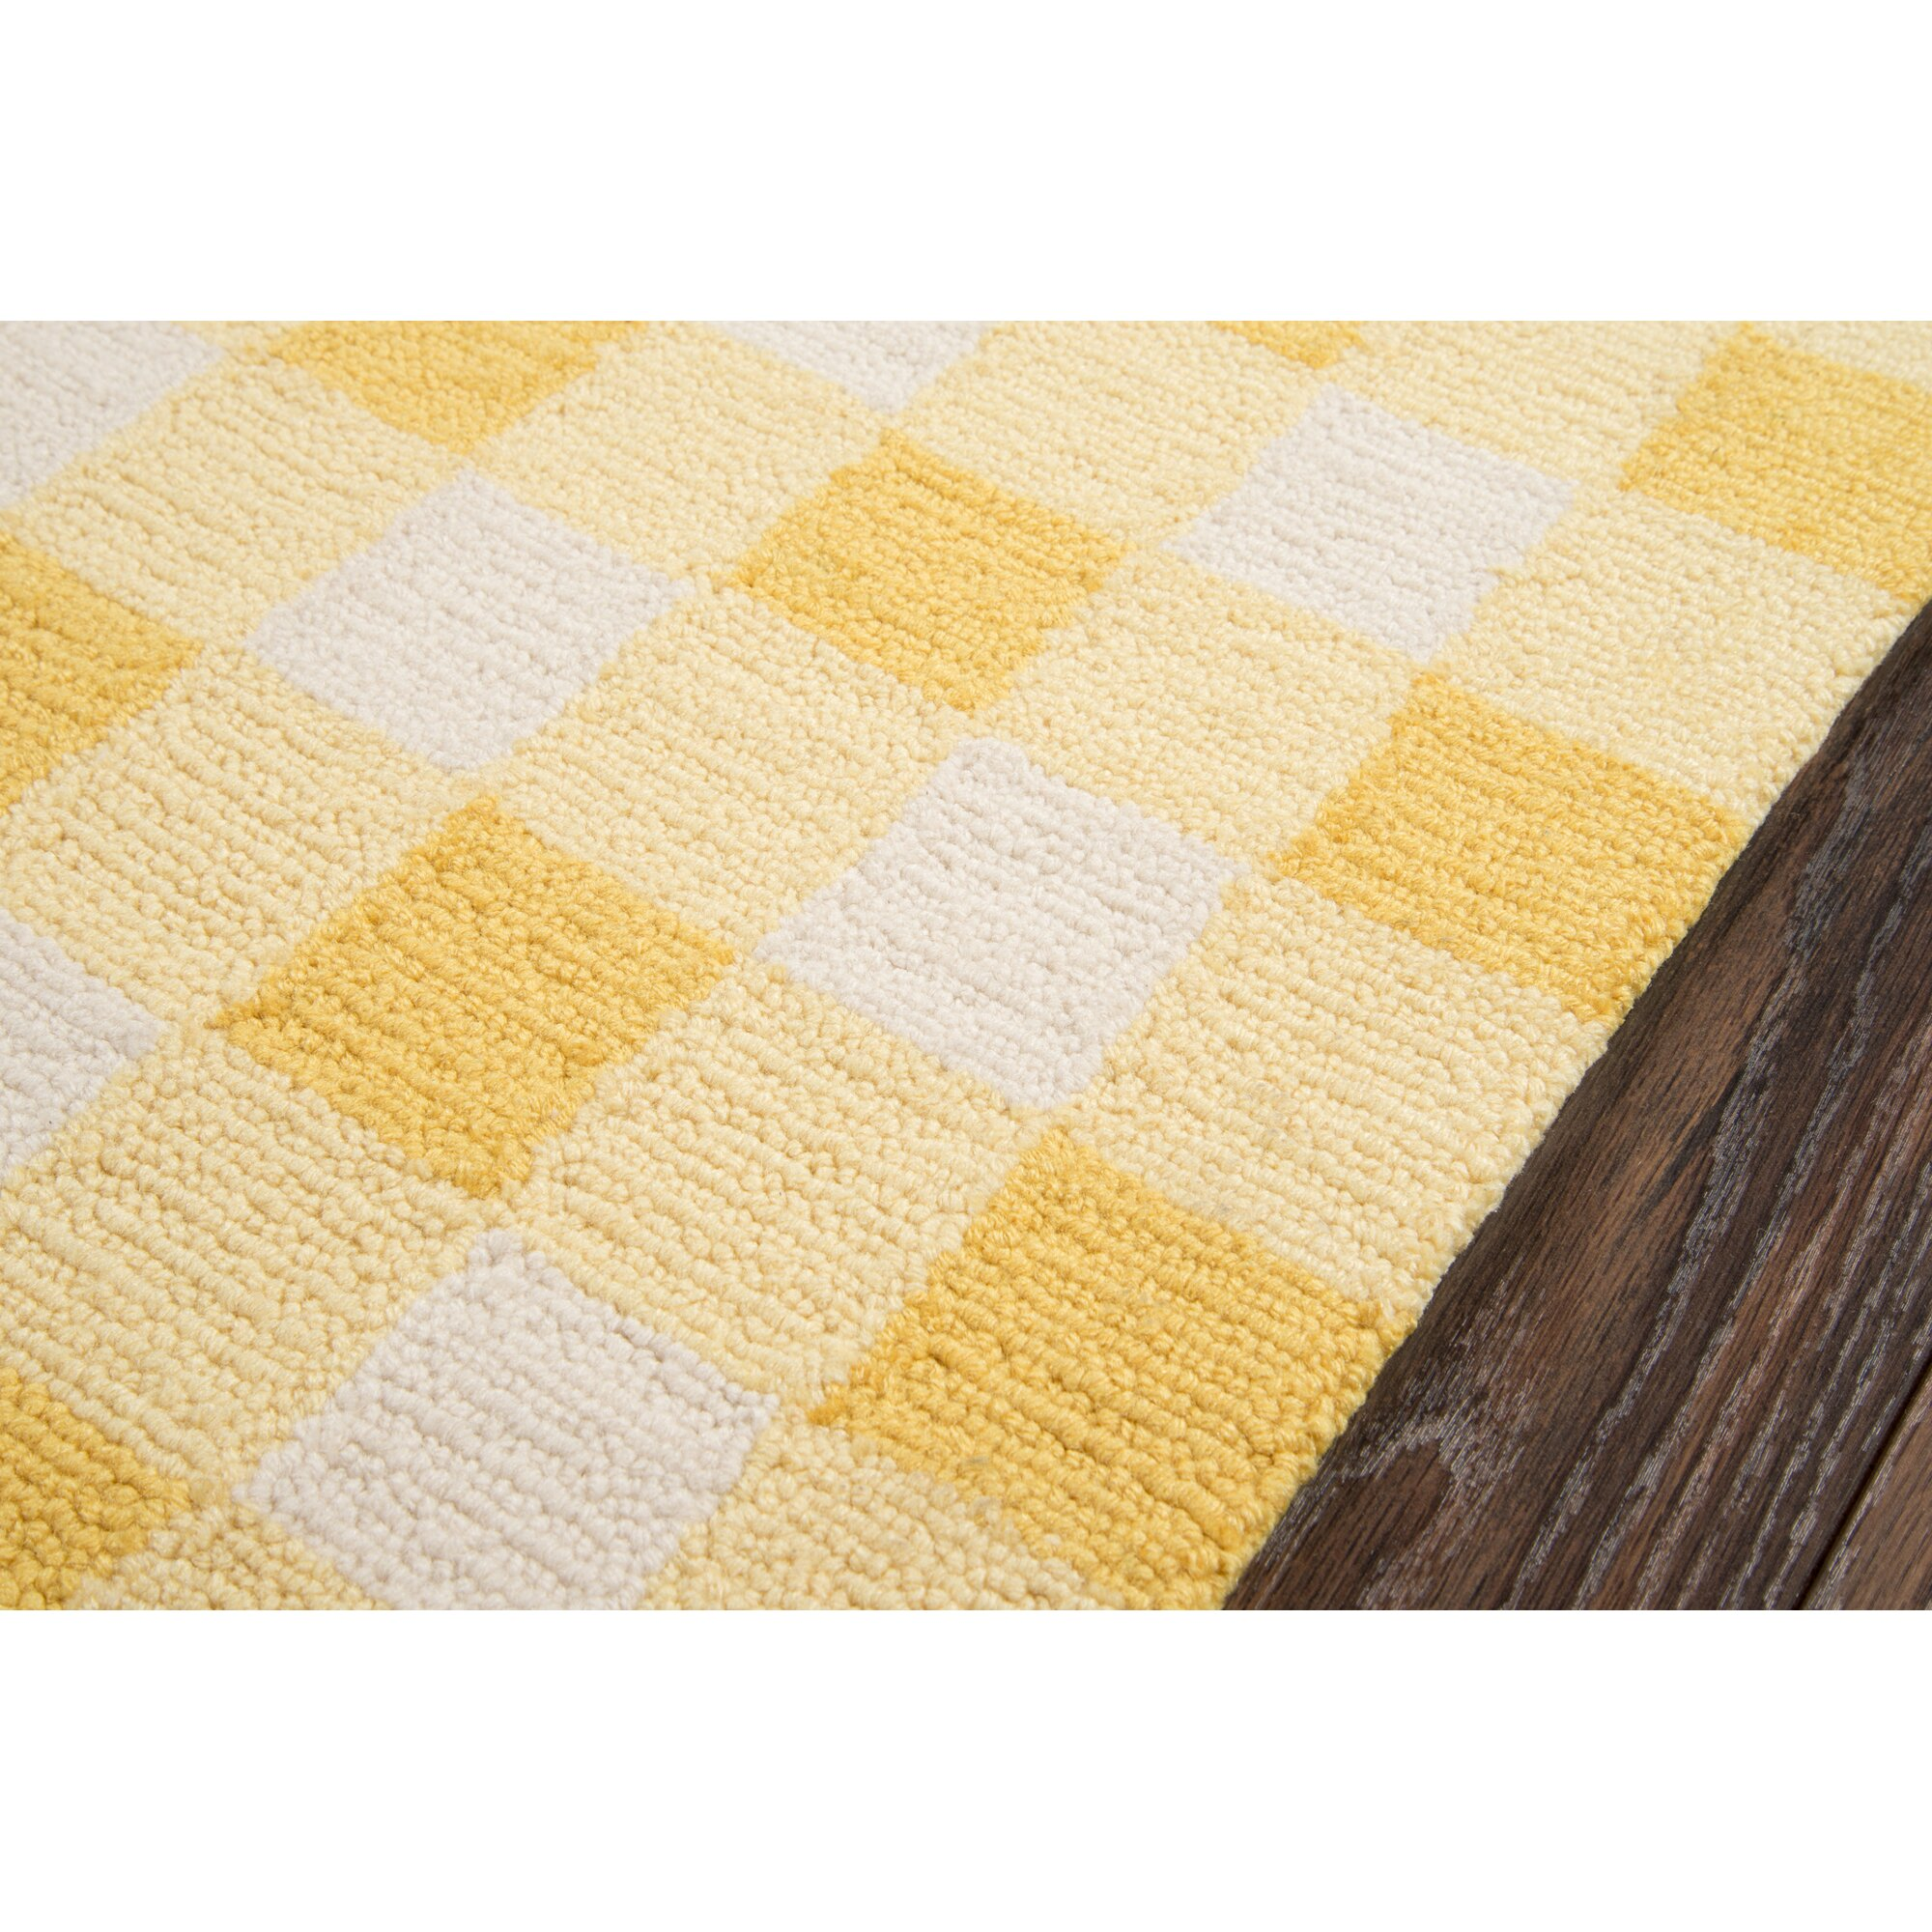 Yellow Checkered Rug: August Grove Violet Hand-Woven Yellow/White Area Rug